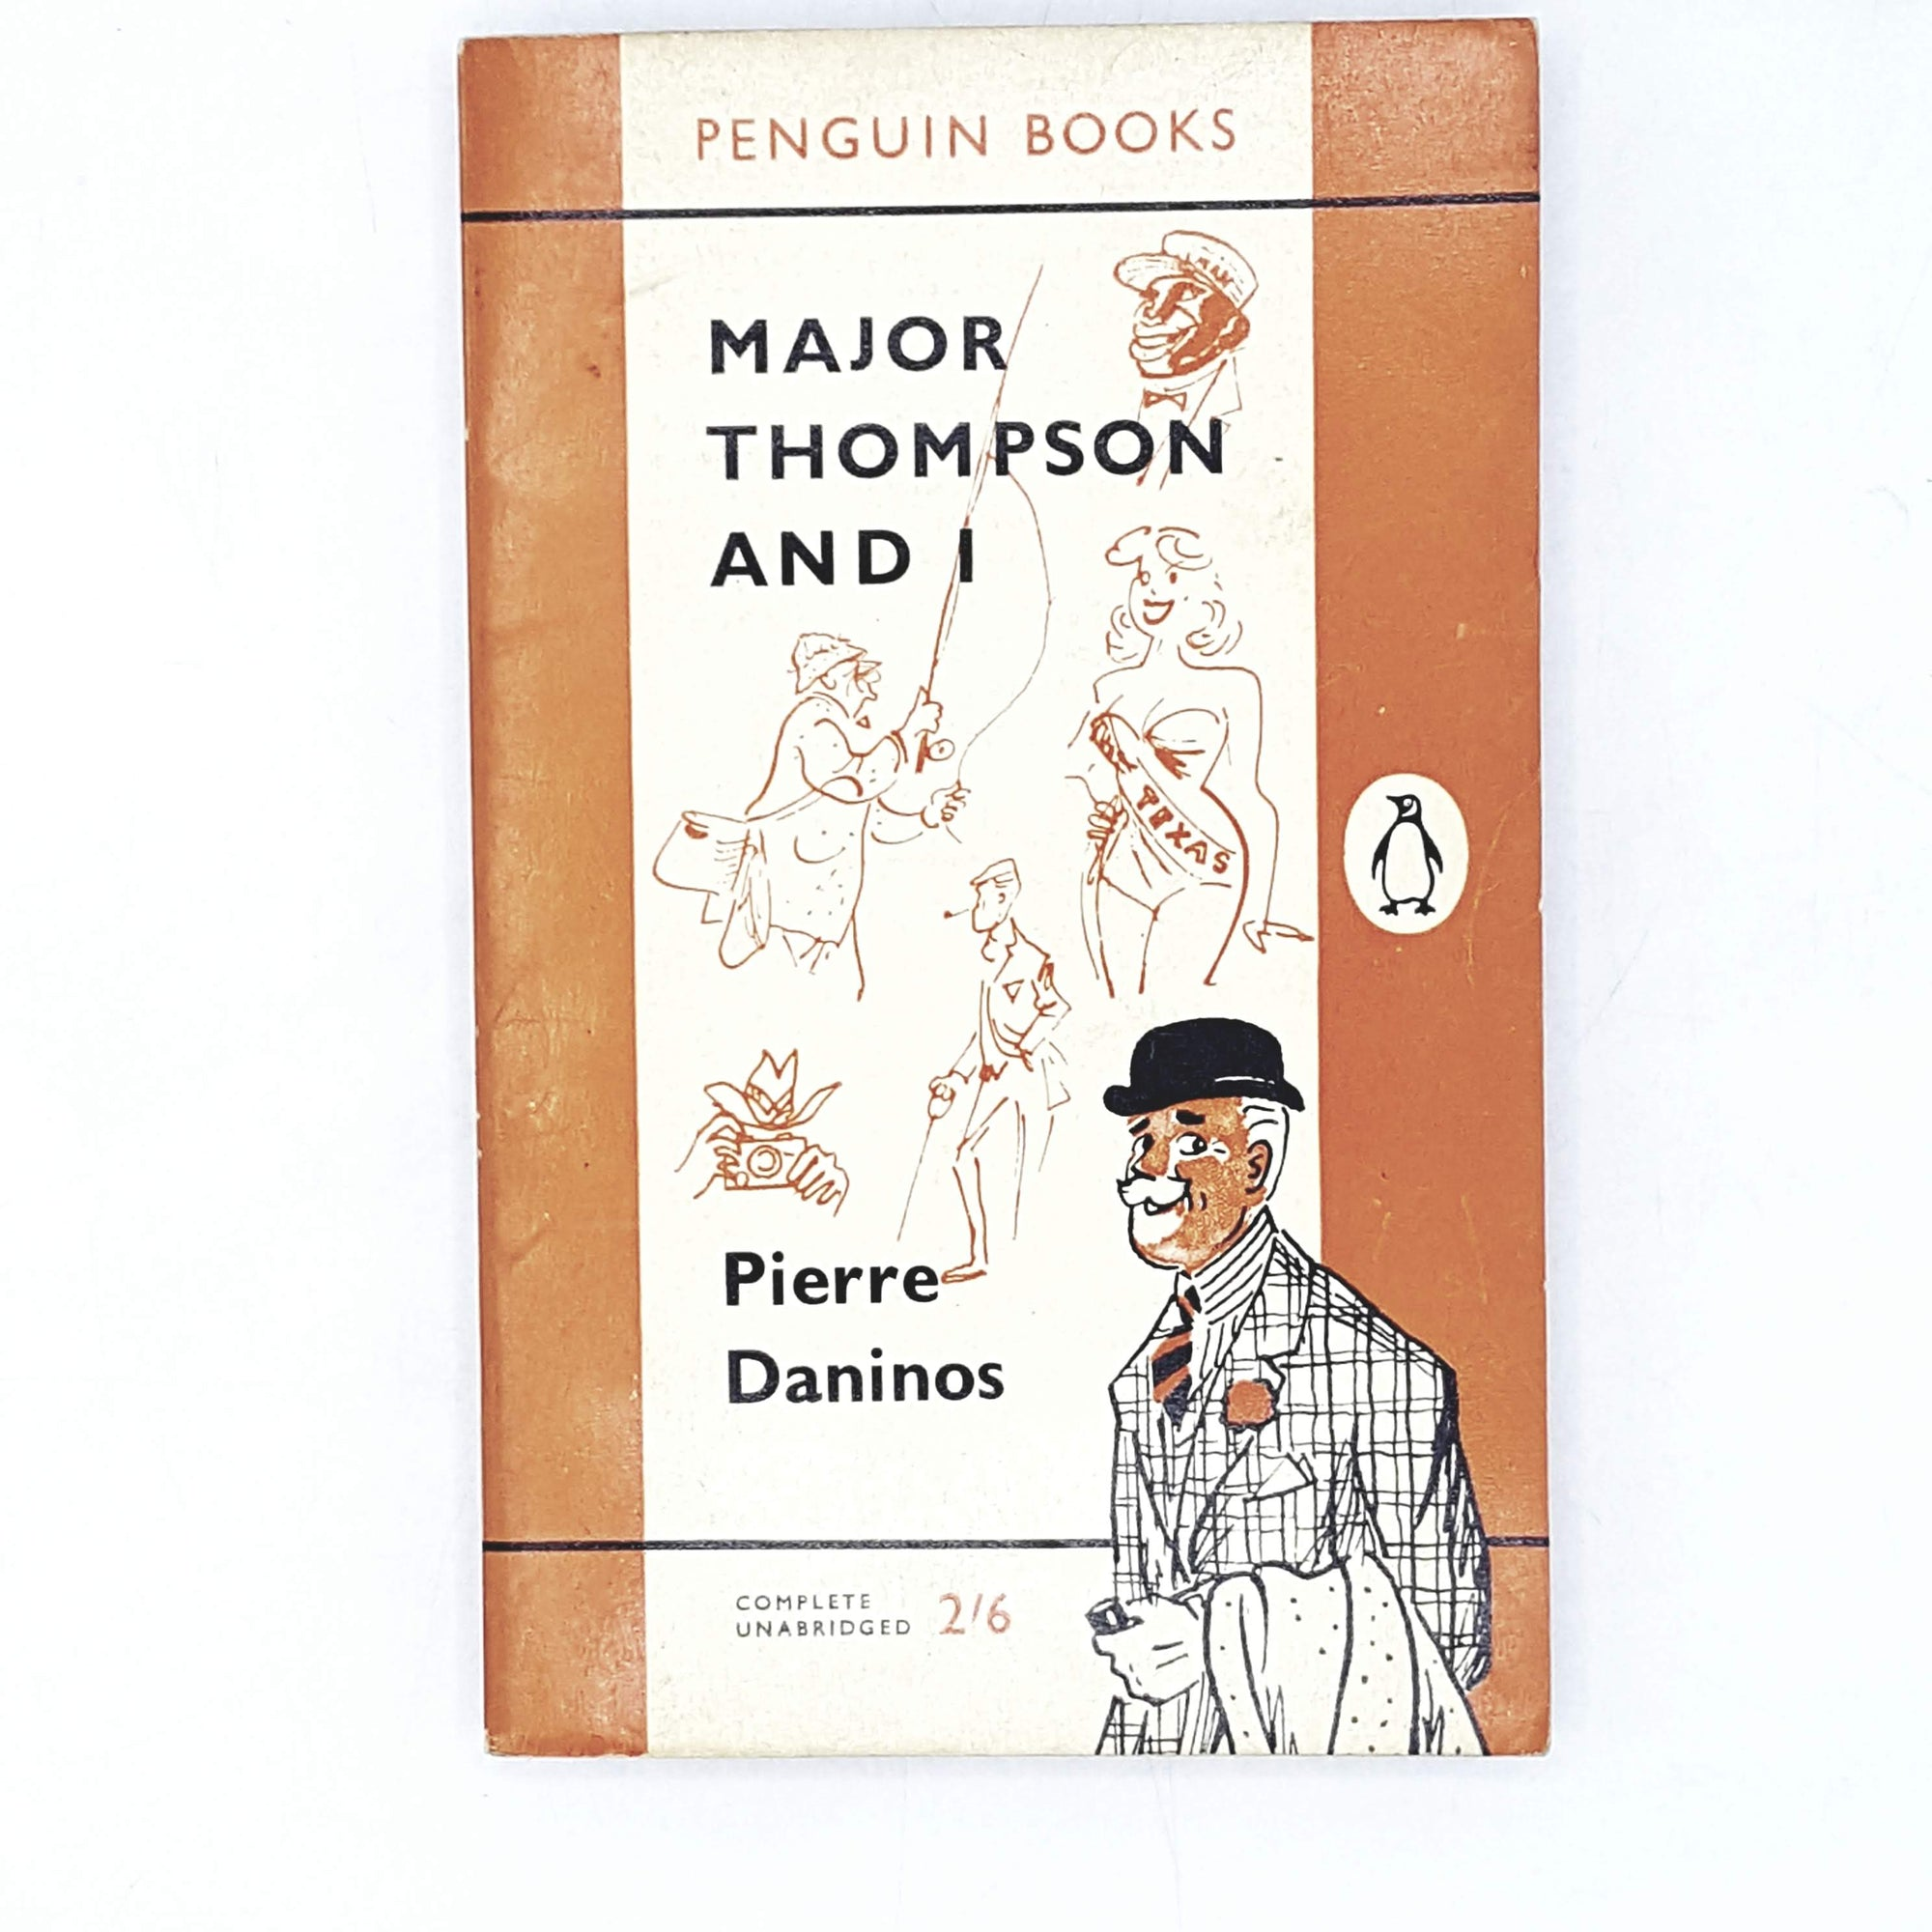 Vintage Penguin Major Thompson and I by Pierre Daninos 1960